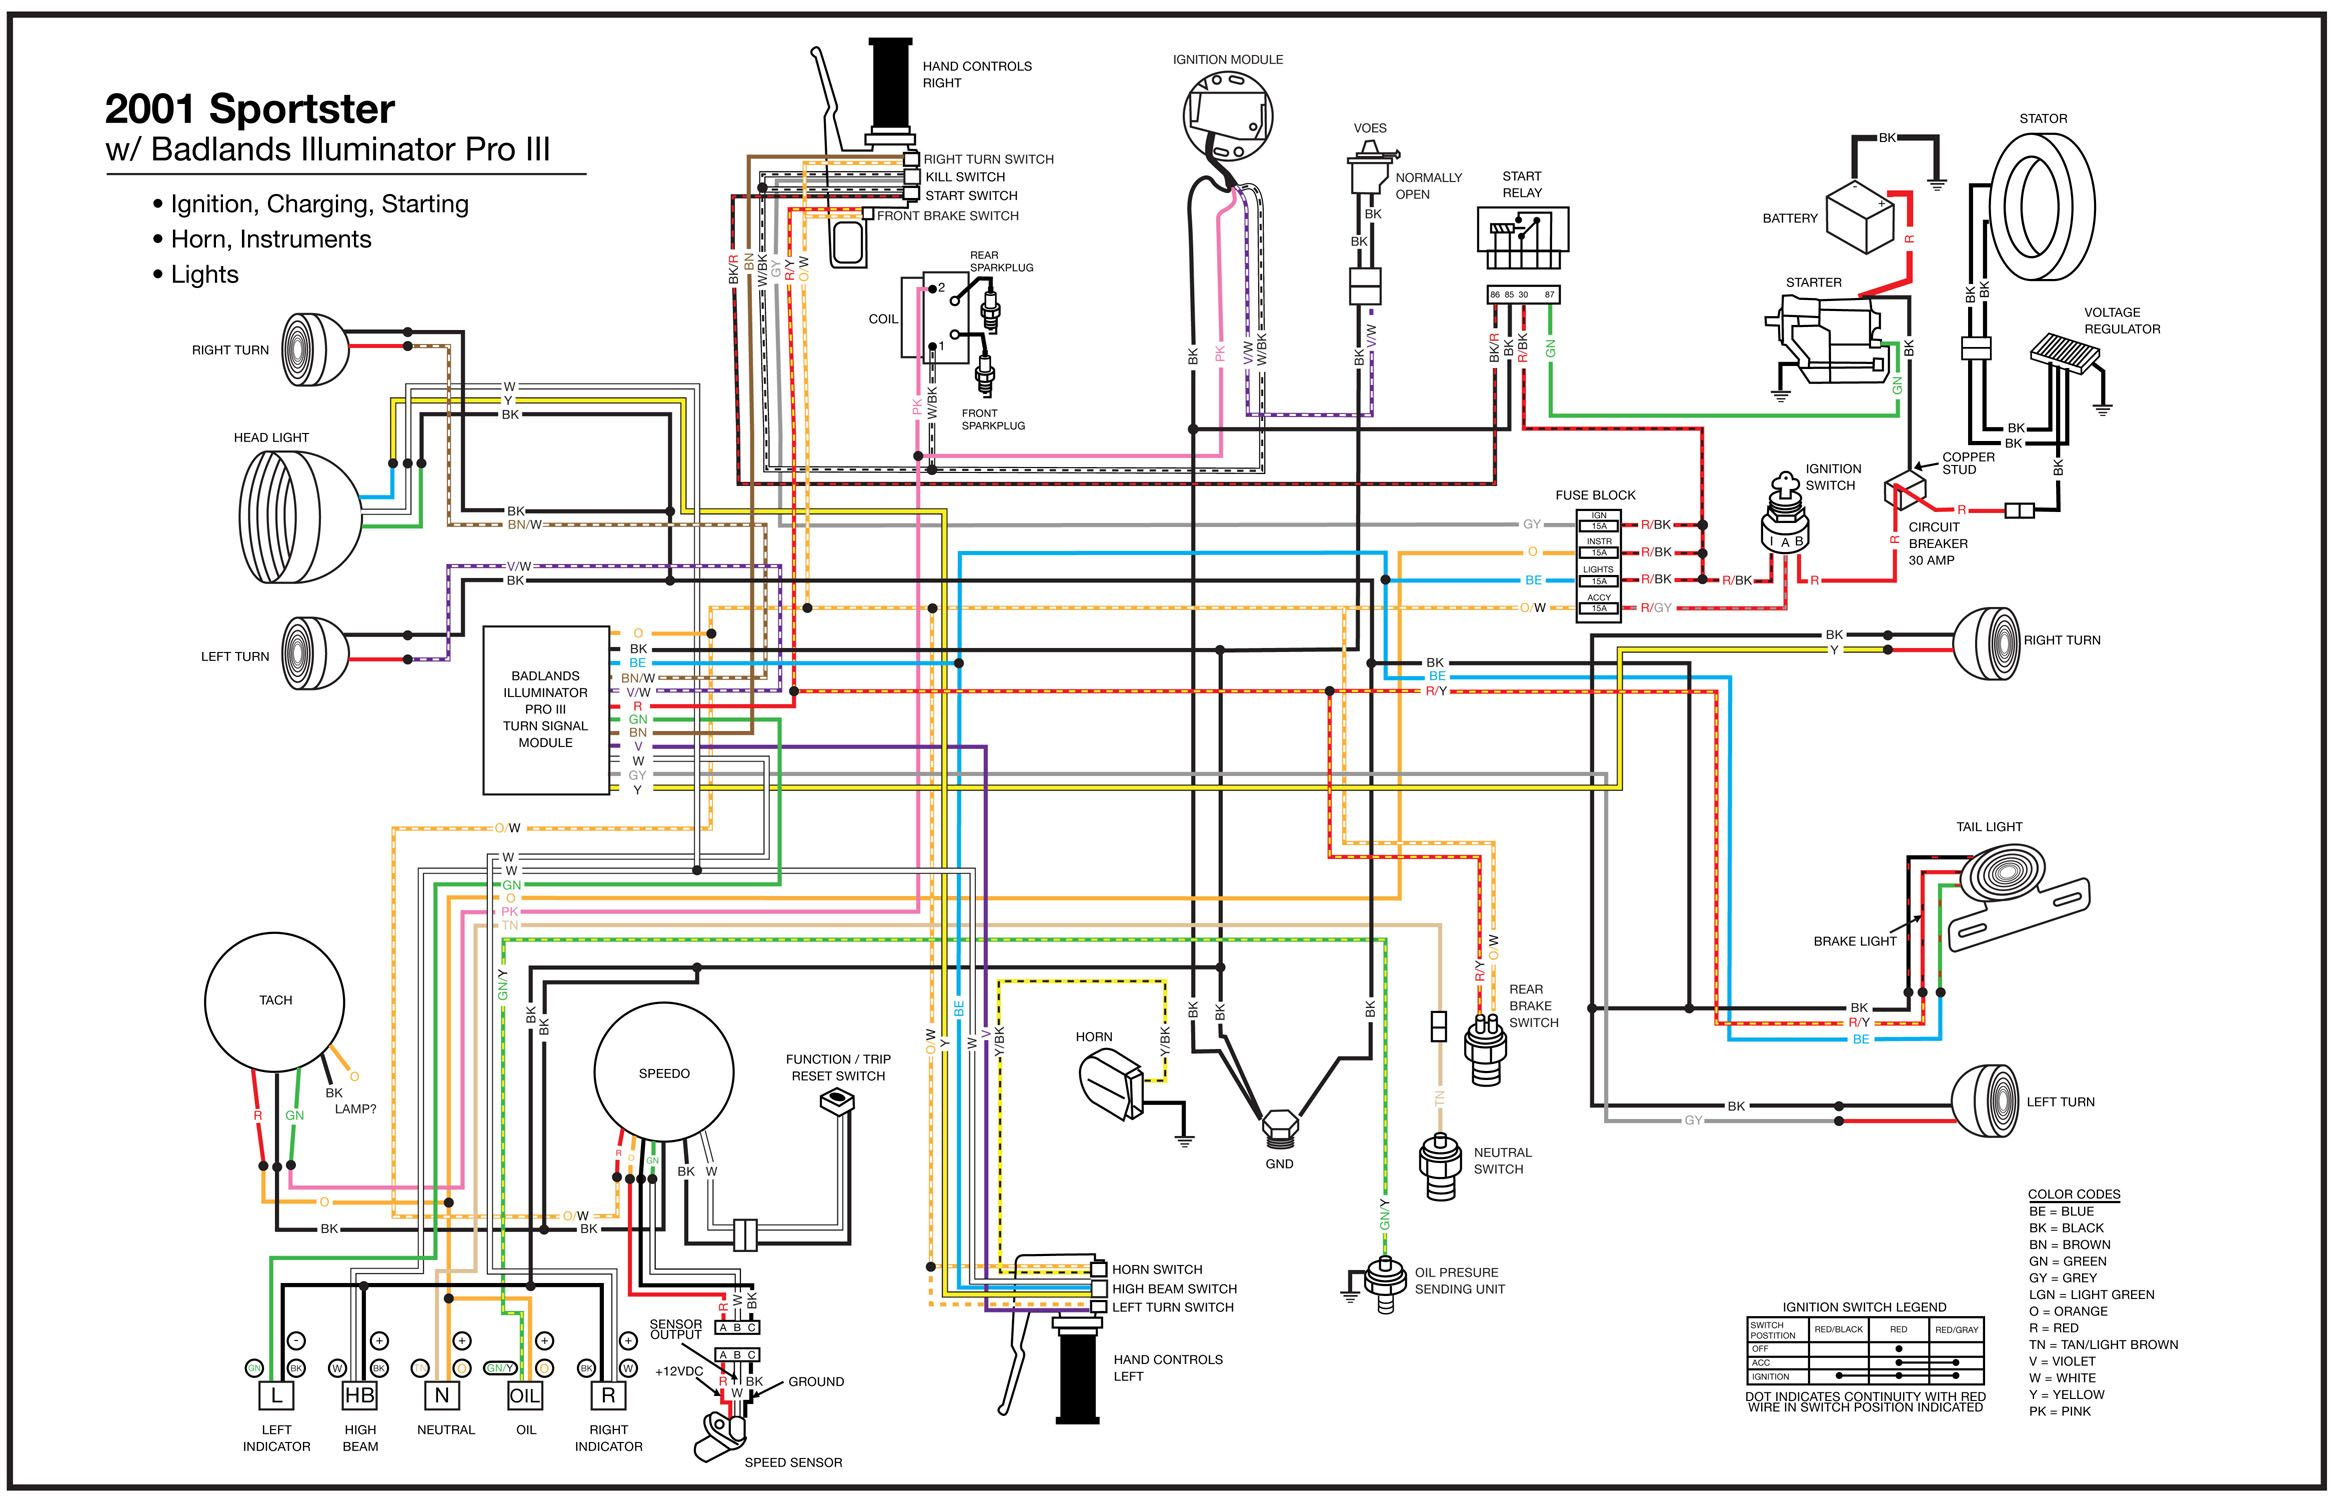 boom trike wiring diagram 2007 wiring diagram user motor trike wiring diagrams [ 2340 x 1500 Pixel ]